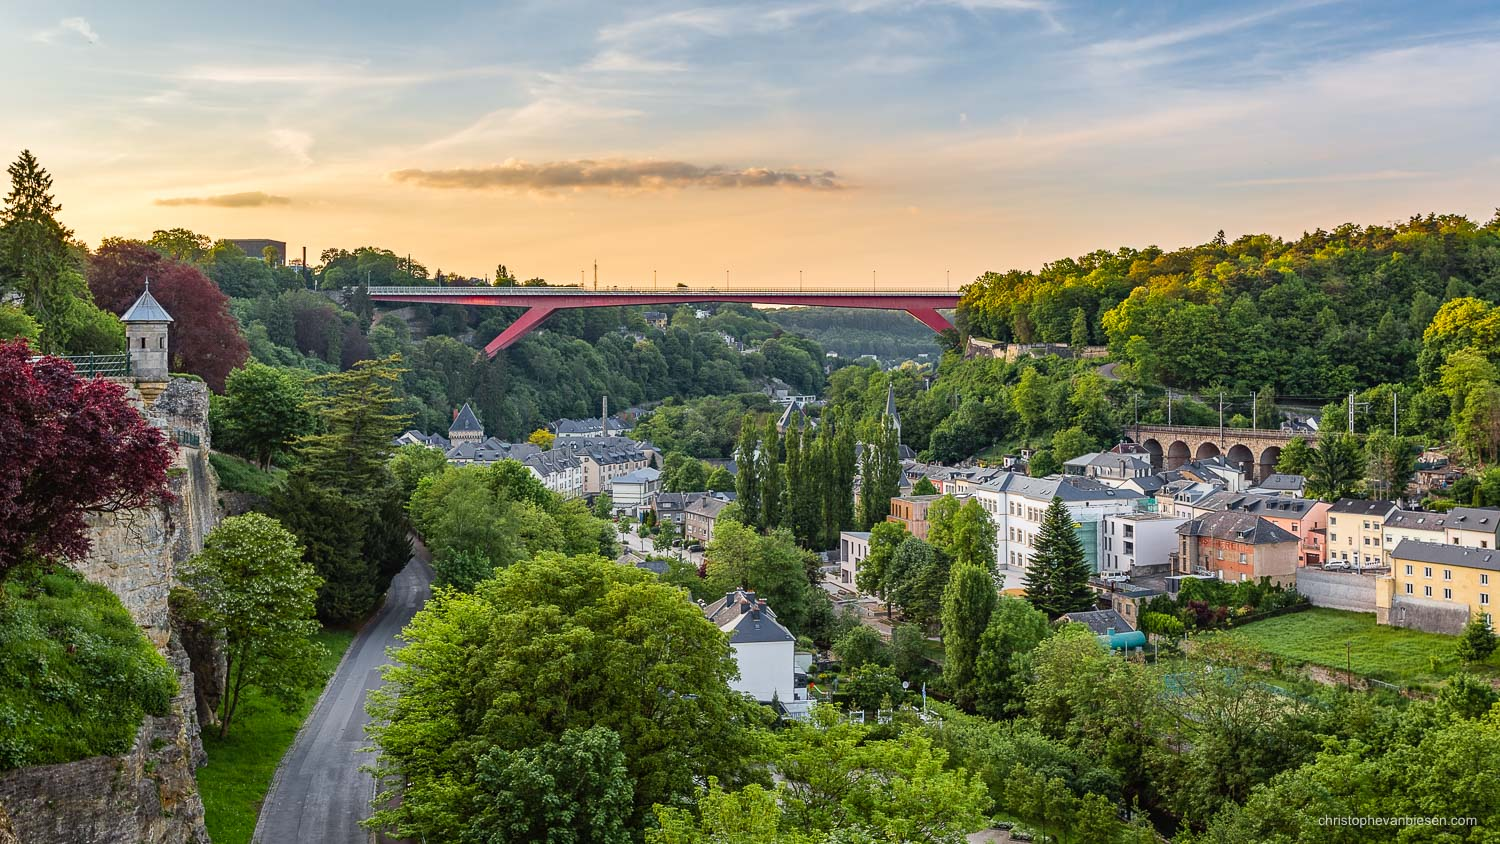 Summer in Luxembourg - Sunset over Luxembourg's Pfaffenthal with its Grand Duchess Charlotte Bridge, aka the Red Bridge, and its Spanish Towers - Le Pont Rouge